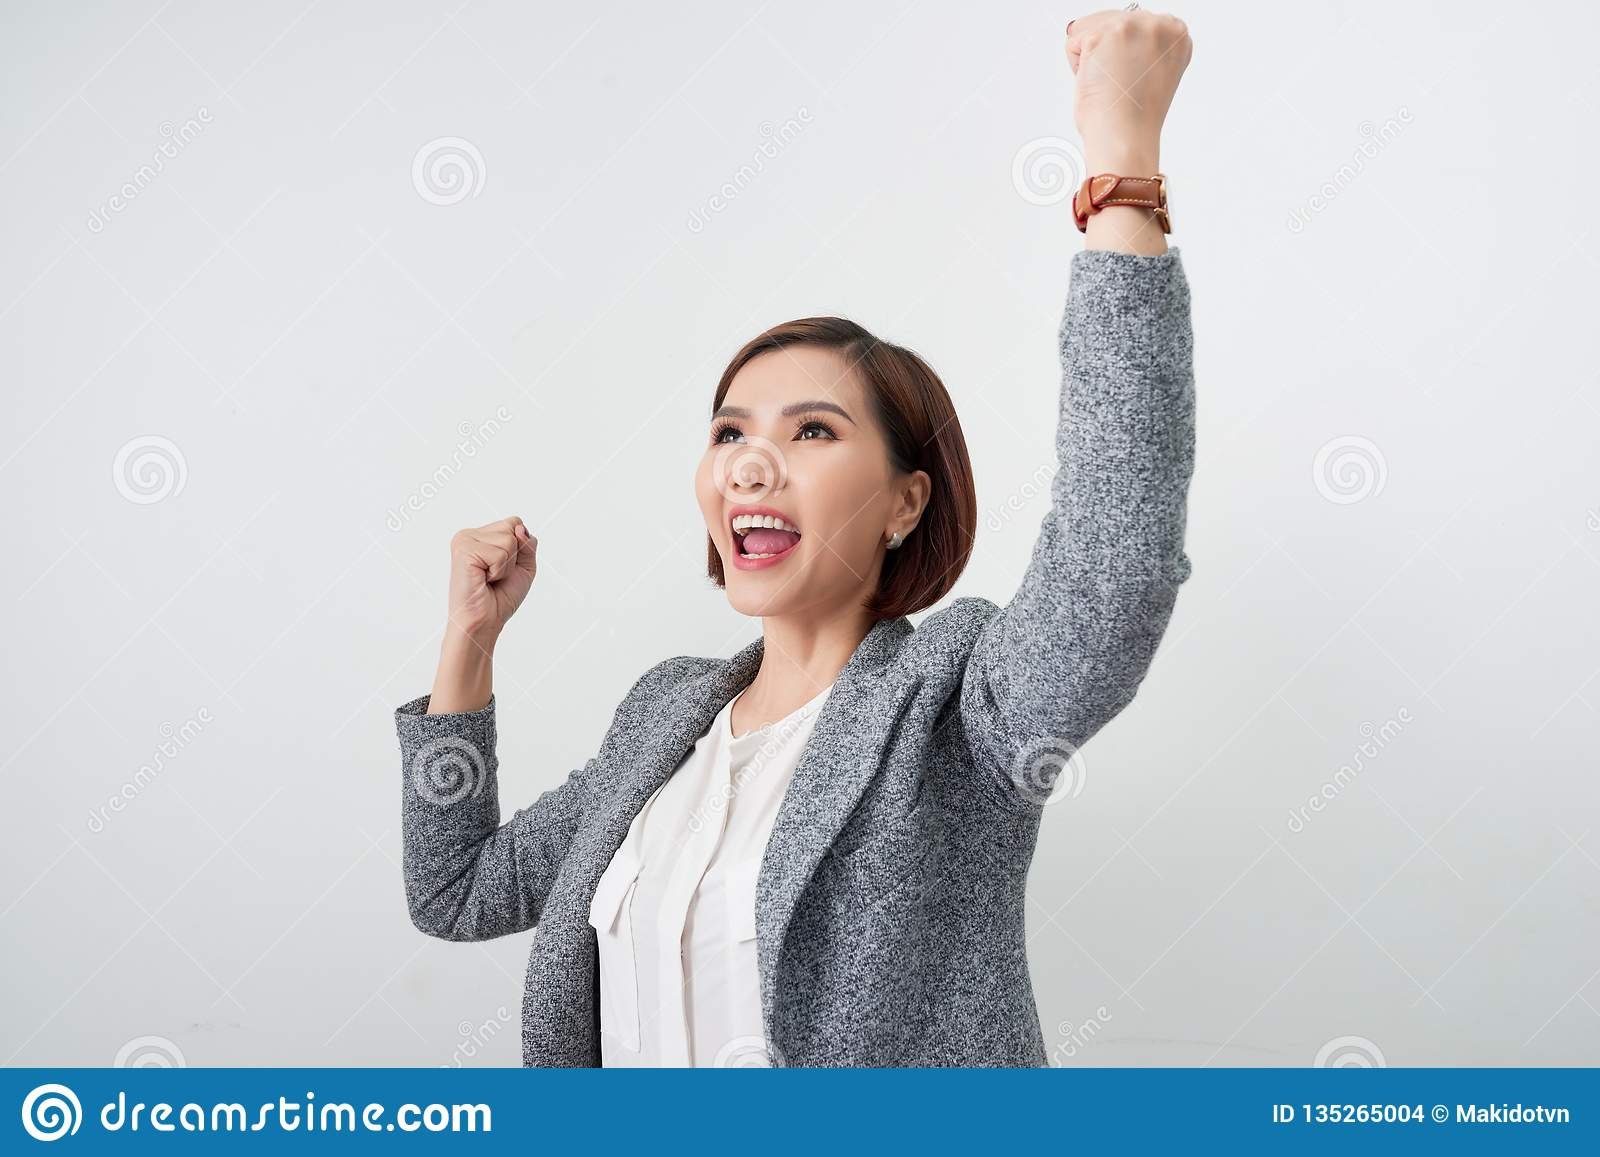 Asian beautiful girl feel happy. smiling woman show hand up successful sign action